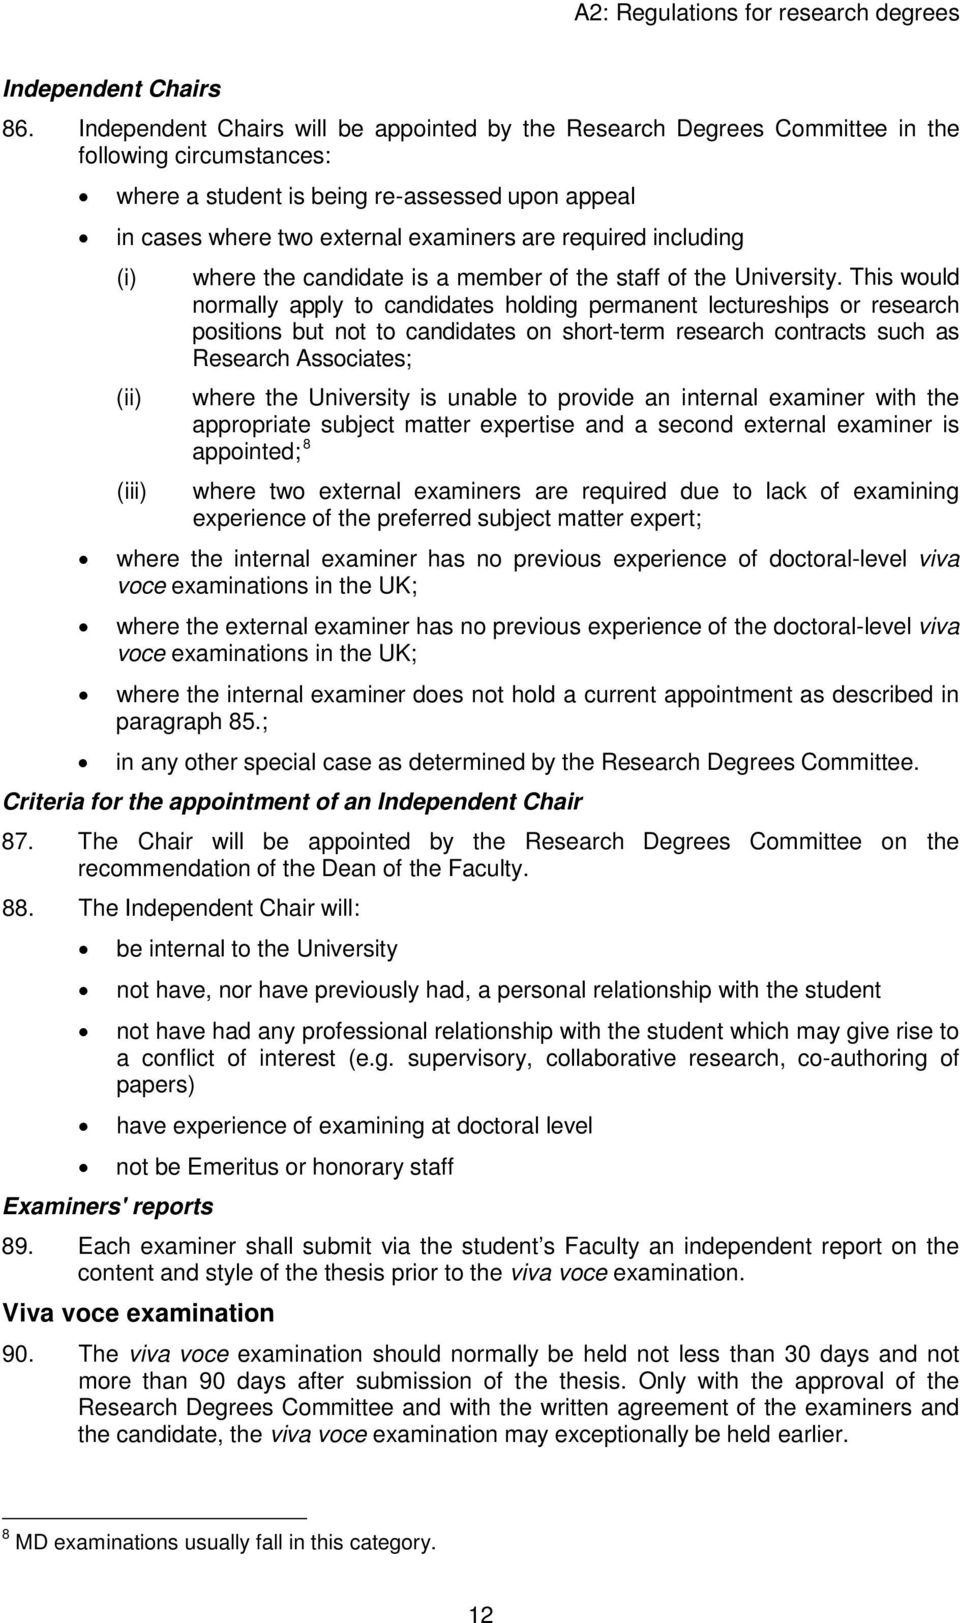 required including (i) (ii) (iii) where the candidate is a member of the staff of the University.